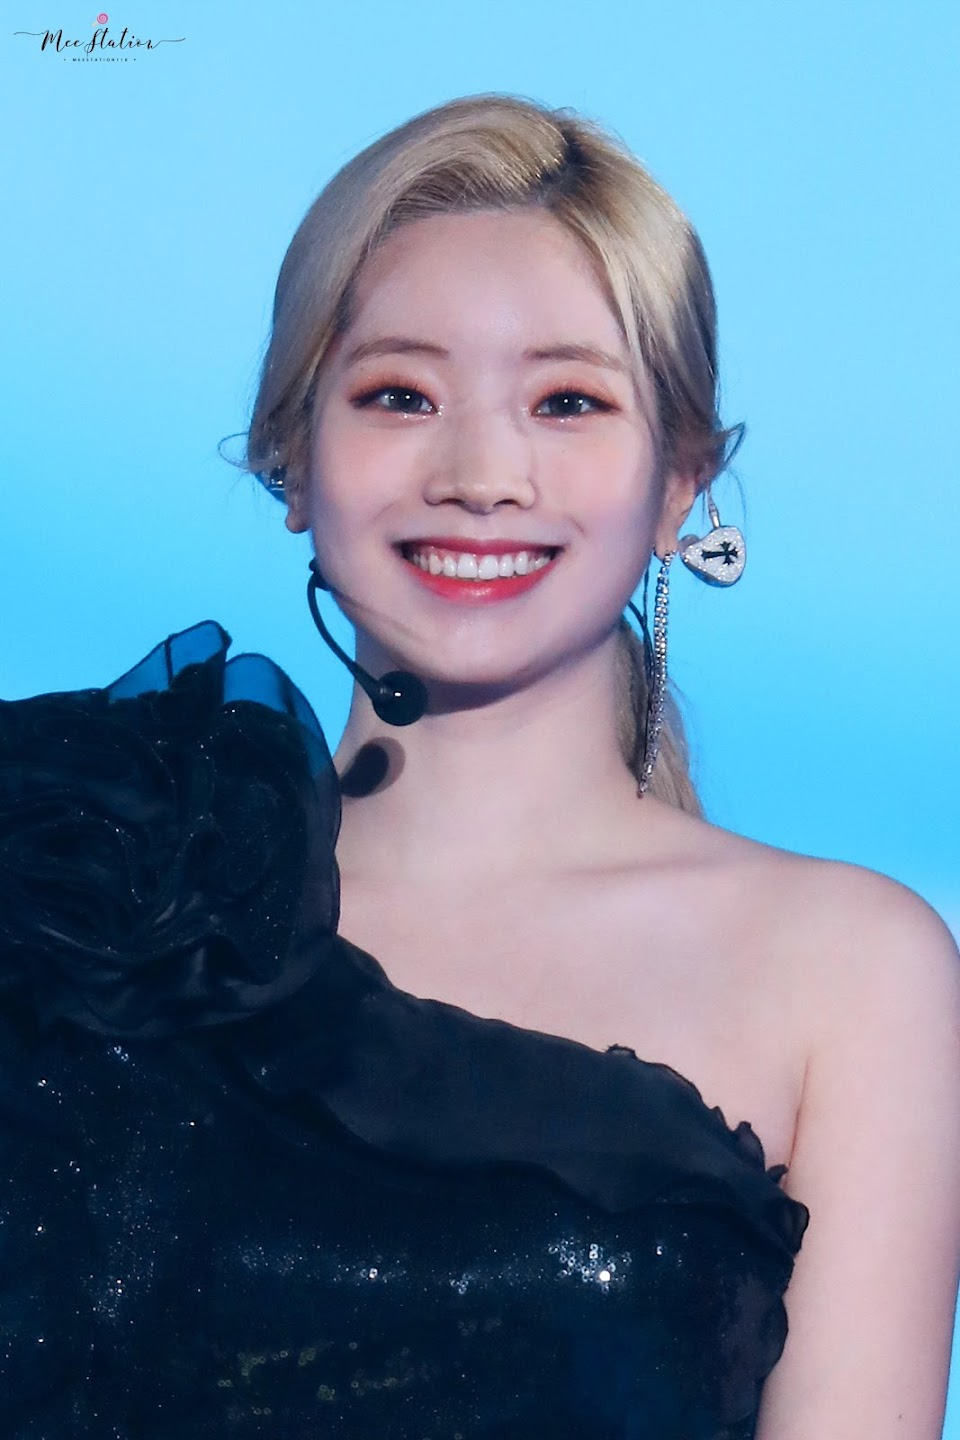 dahyun shoulder 2